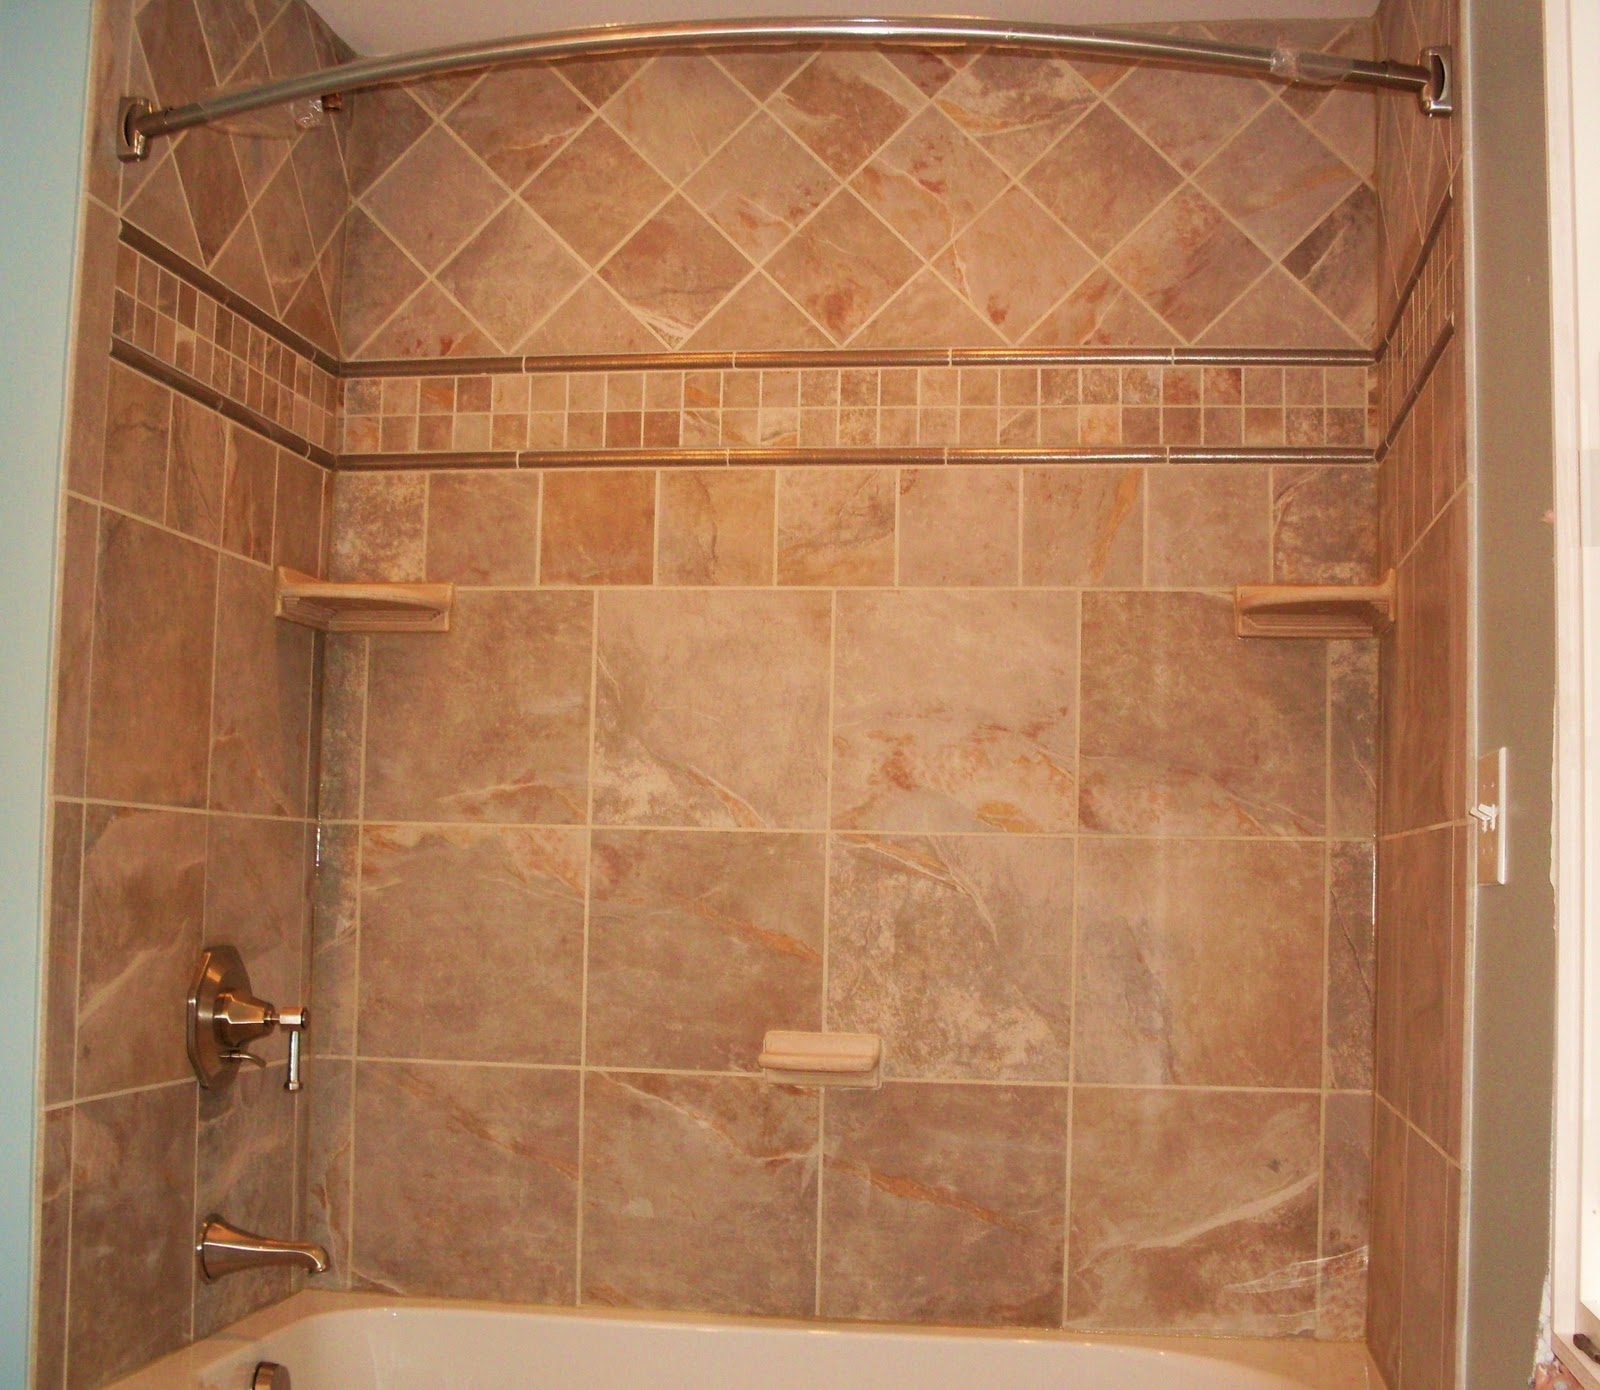 Remodel ideas on pinterest tile tub surround tub for Bathroom tile designs pictures